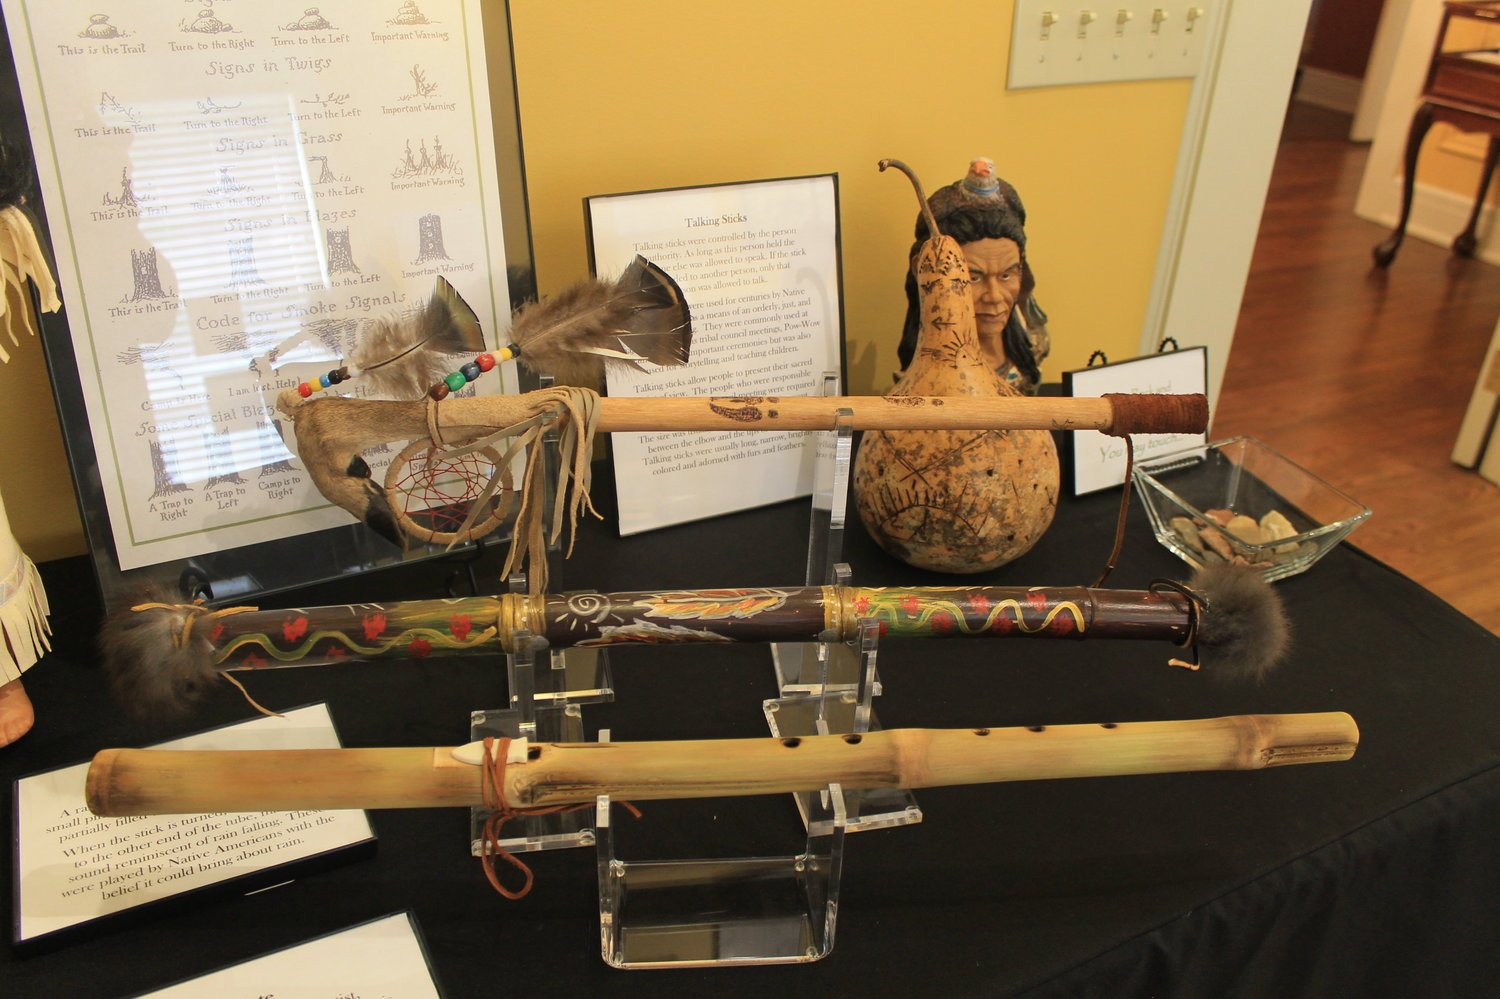 A talking stick, a rainstick and a cane flute are among the Native American artifacts that local collector Wheeler Pounds has loaned to the Bankhead House and Heritage Center for a new exhibit that opens today. A reception will be held today from 2 to 4 p.m. The exhibit runs through Sept. 20.